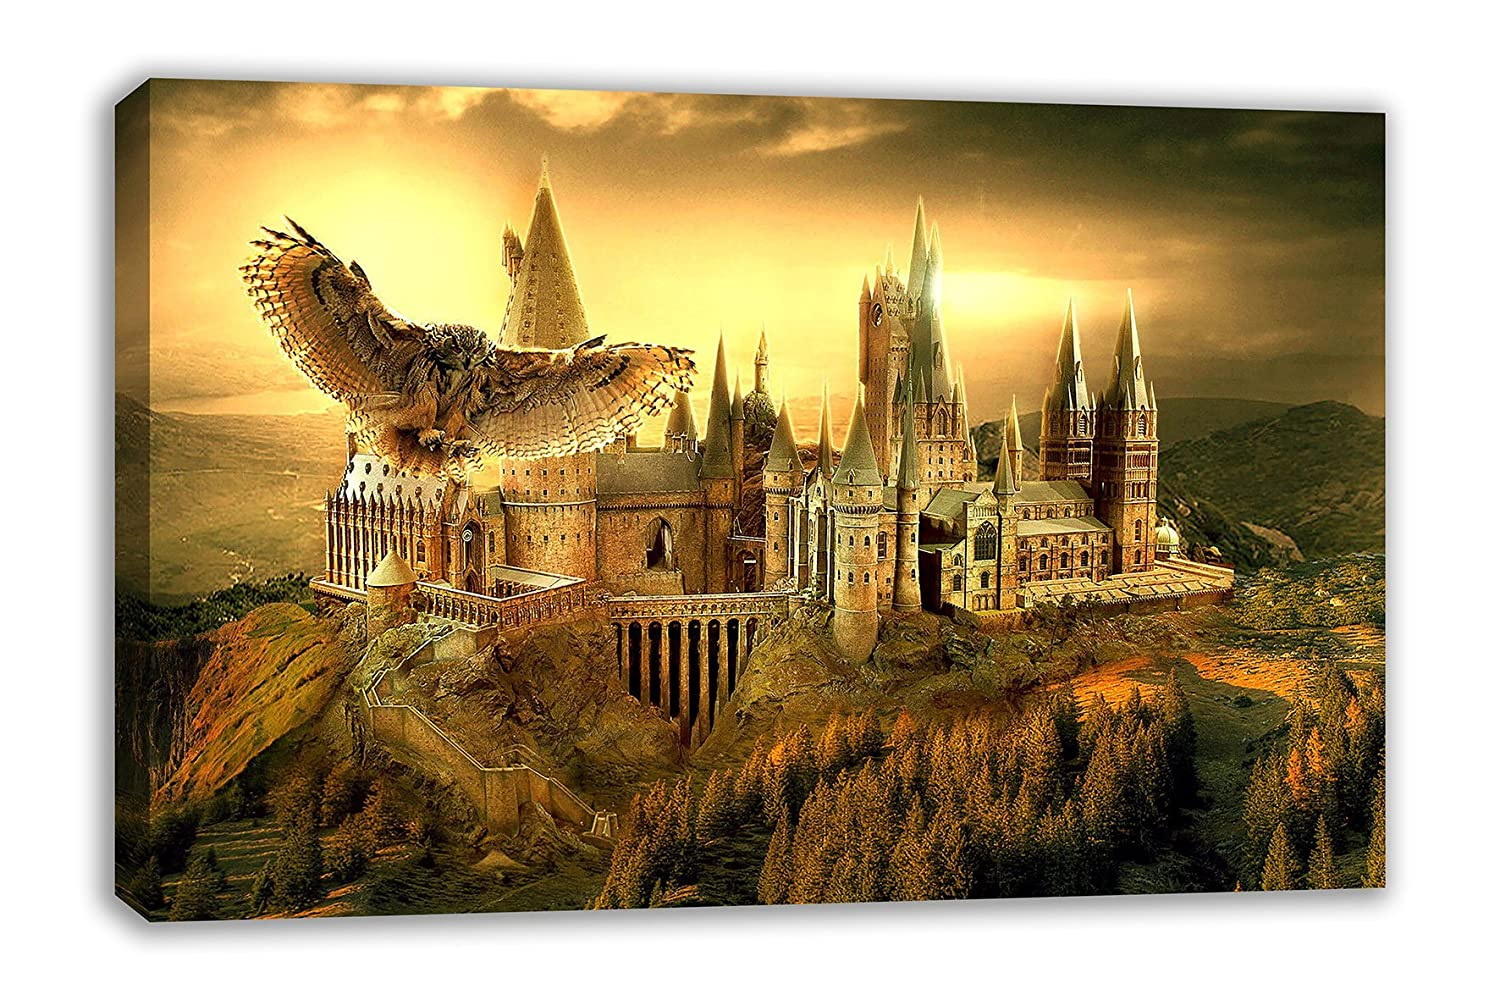 Amazon.com: HARRY POTTER HOGWARTS SCHOOL OF WITCHCRAFT AND WIZADRY ...